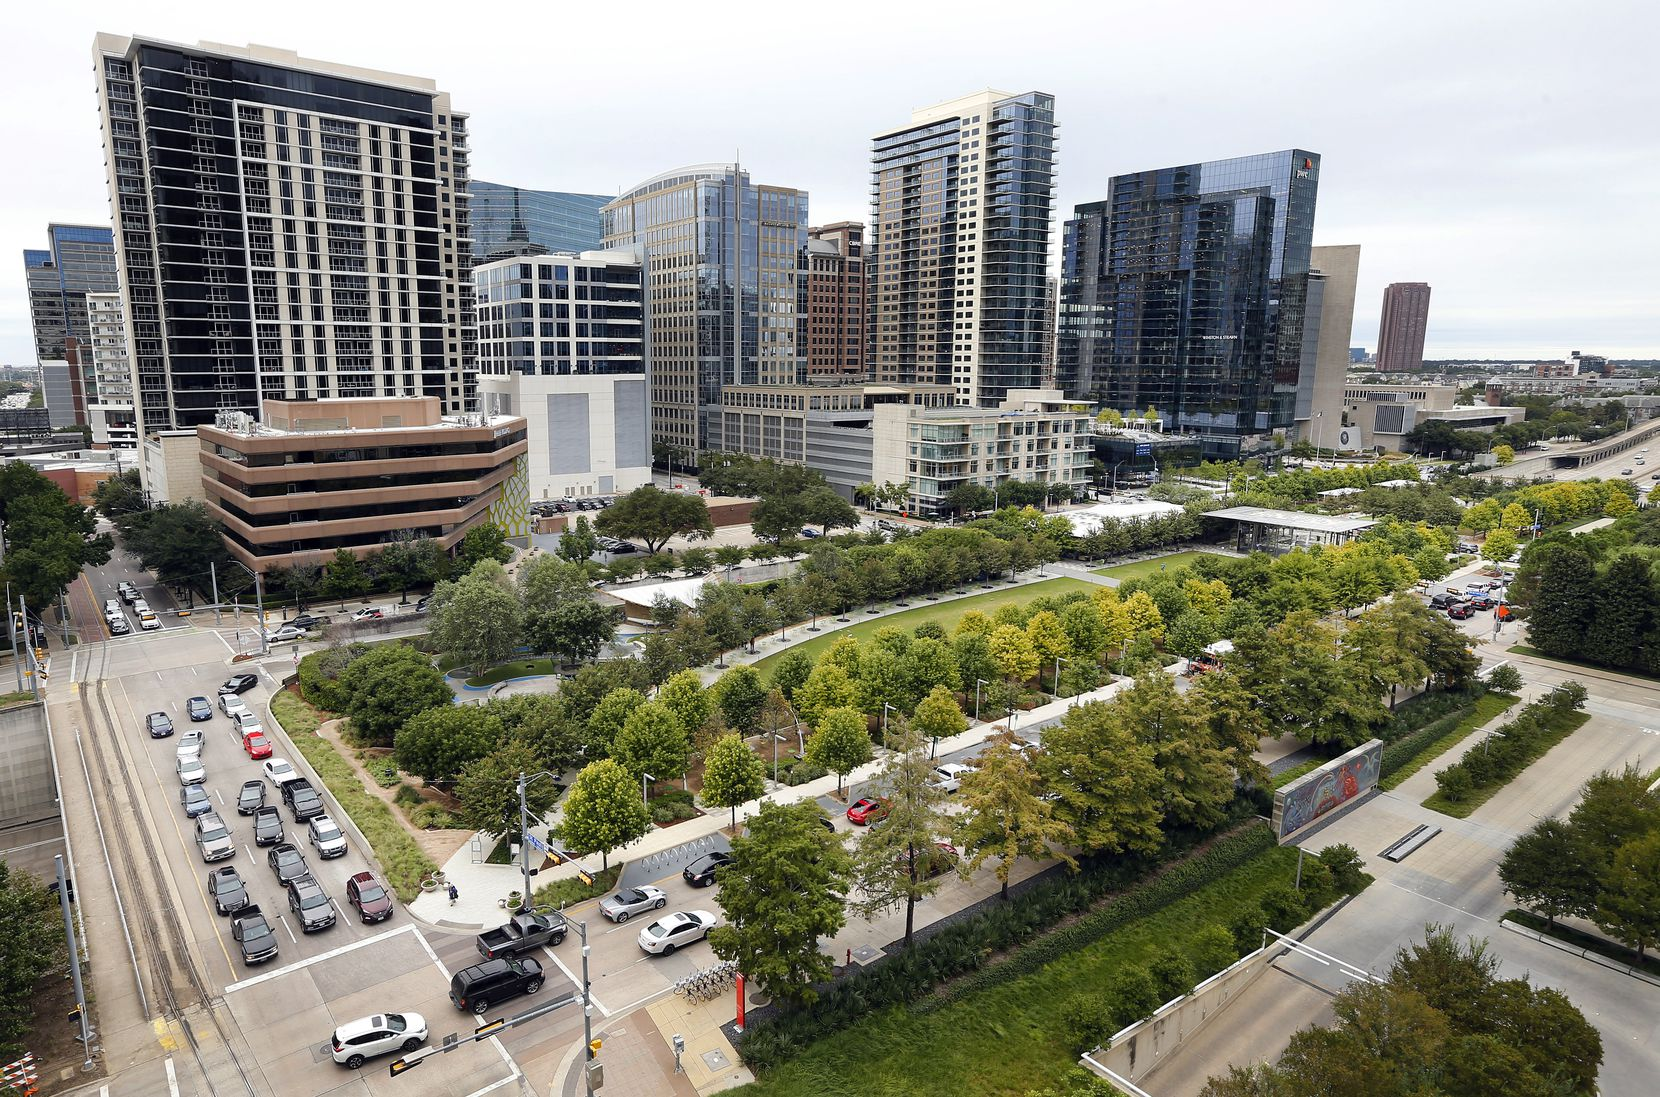 Klyde Warren Park is, unquestionably, the most significant urban achievement of the last decade in Dallas.